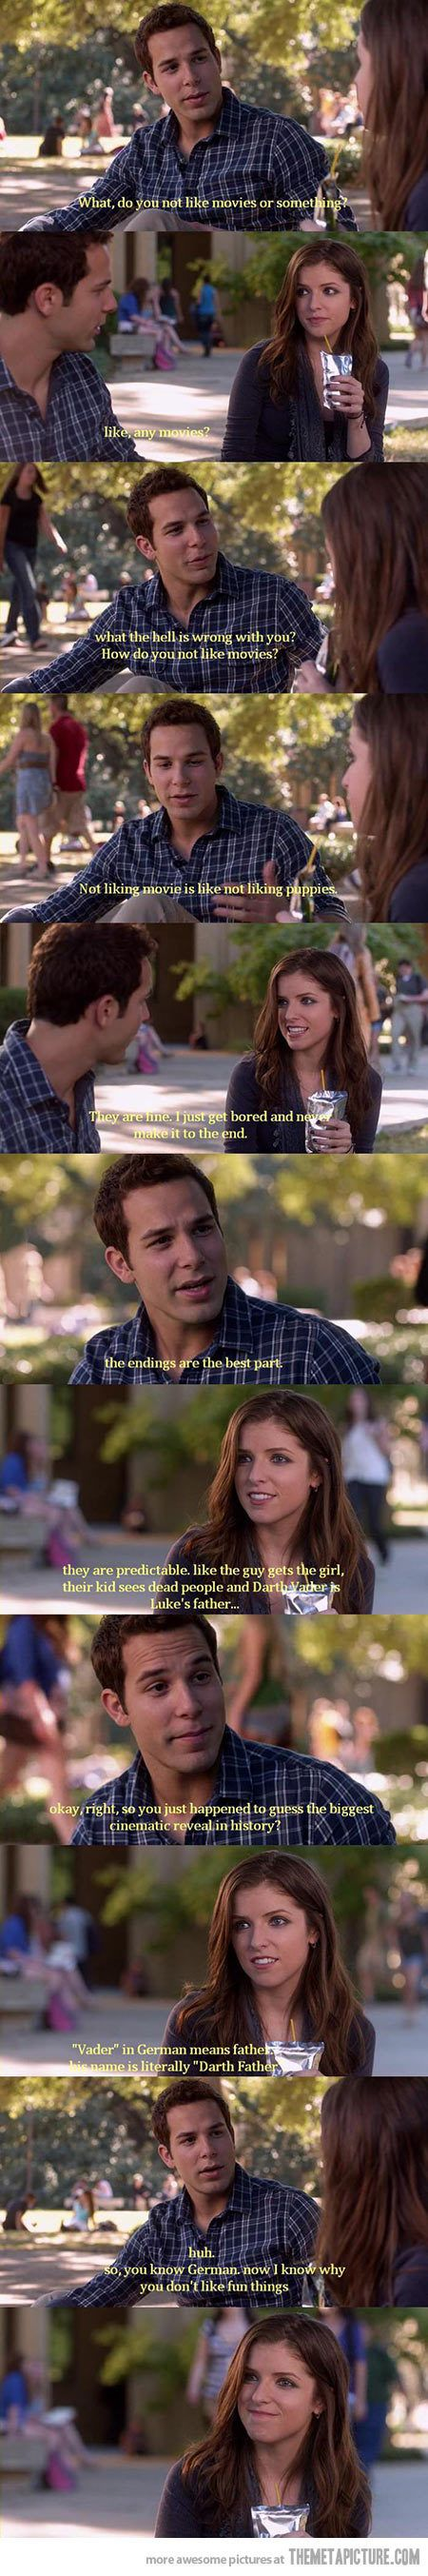 Pitch Perfect - Becca & Jesse ♥ so cute together!